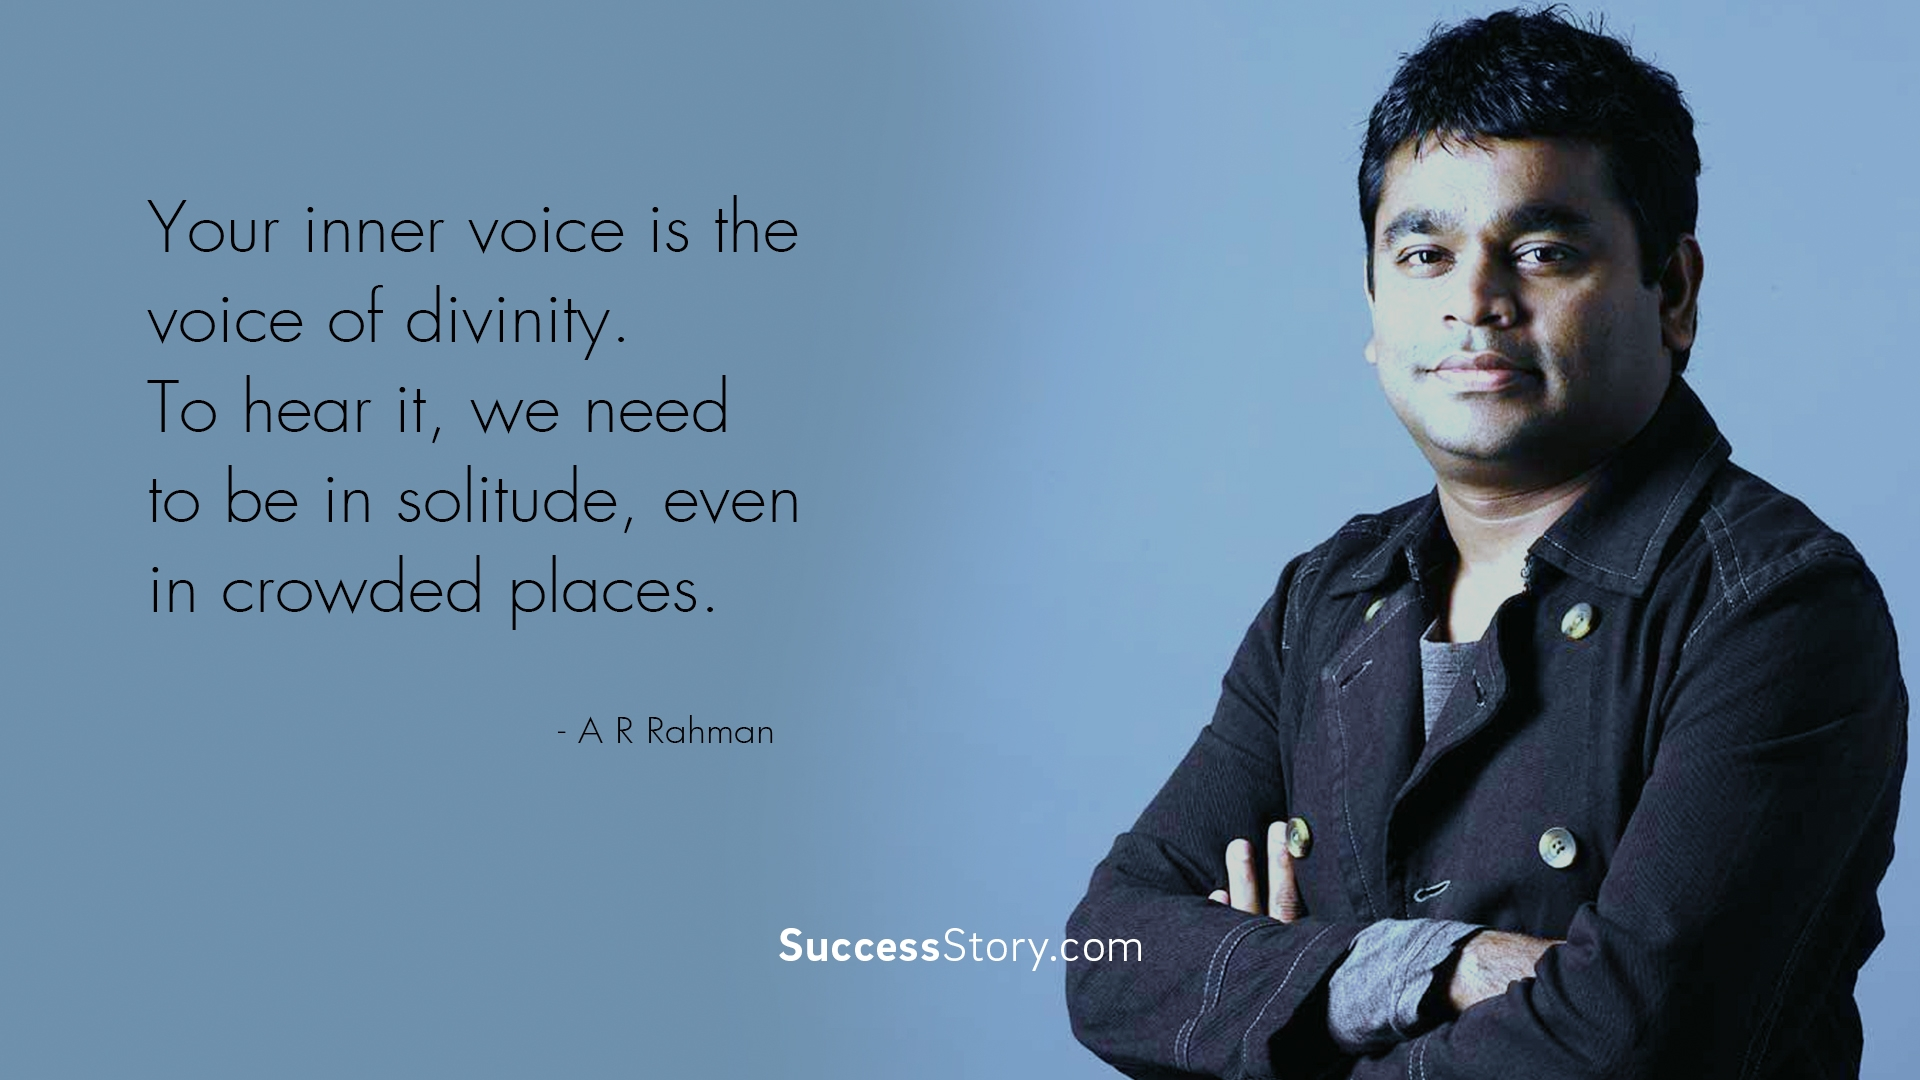 Your inner voice is the voice